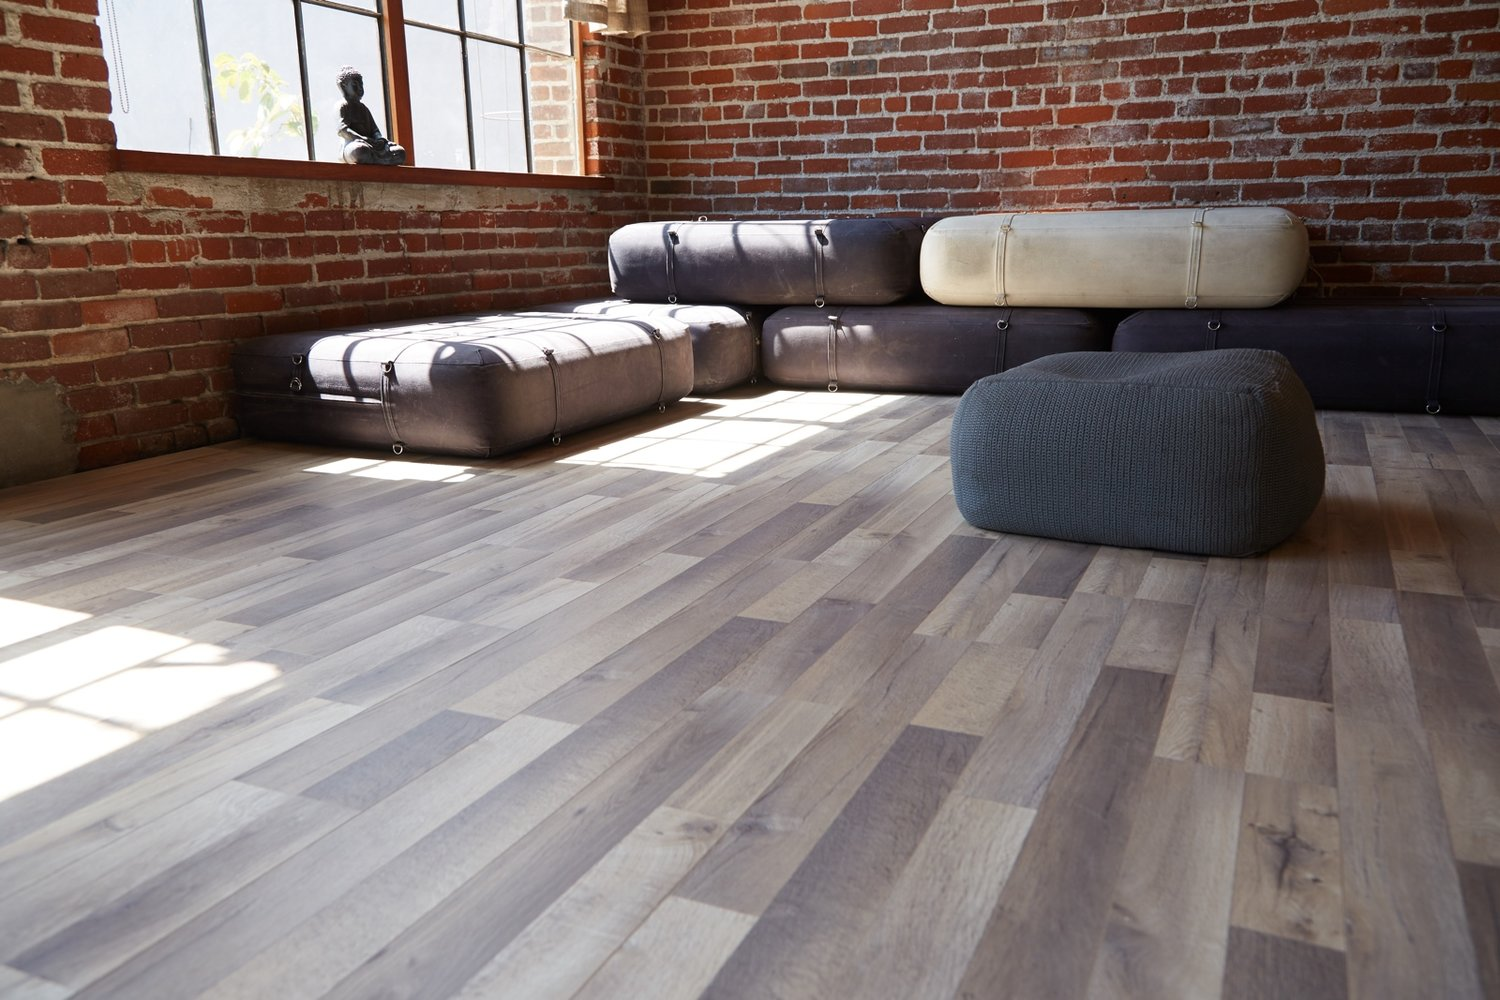 Flooring Contractor 5 Reasons Why Laminate Flooring Can Be An Ideal Solution Home.jpg